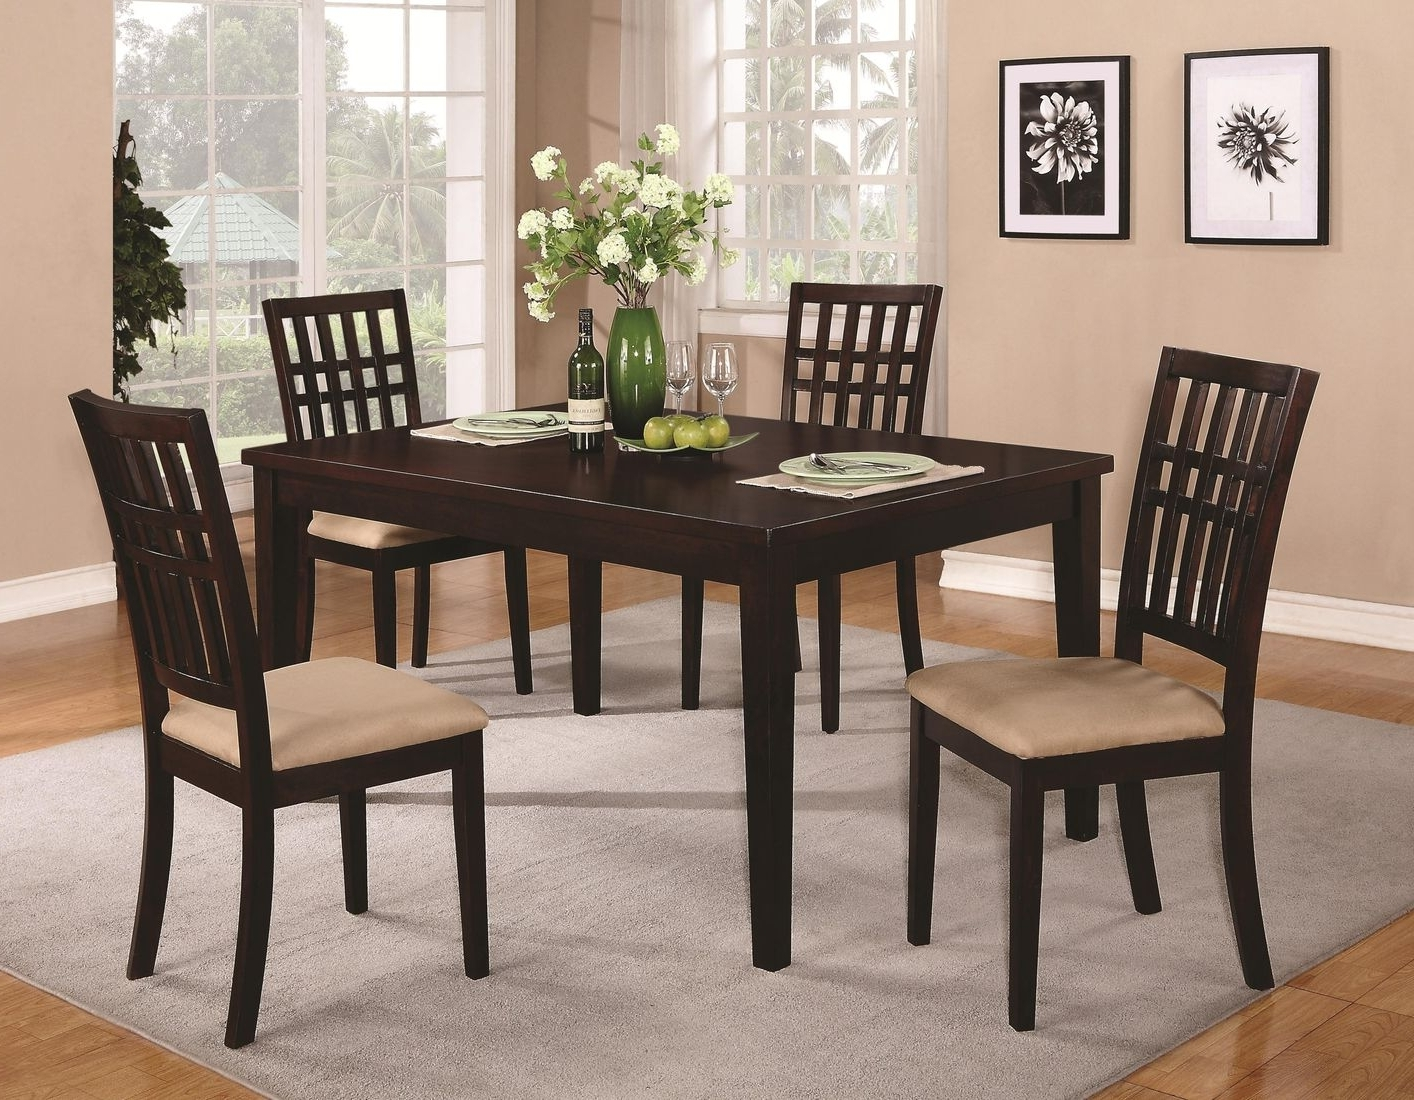 Most Current Brandt Dark Cherry Wood Dining Table Intended For Dining Tables Dark Wood (View 5 of 25)